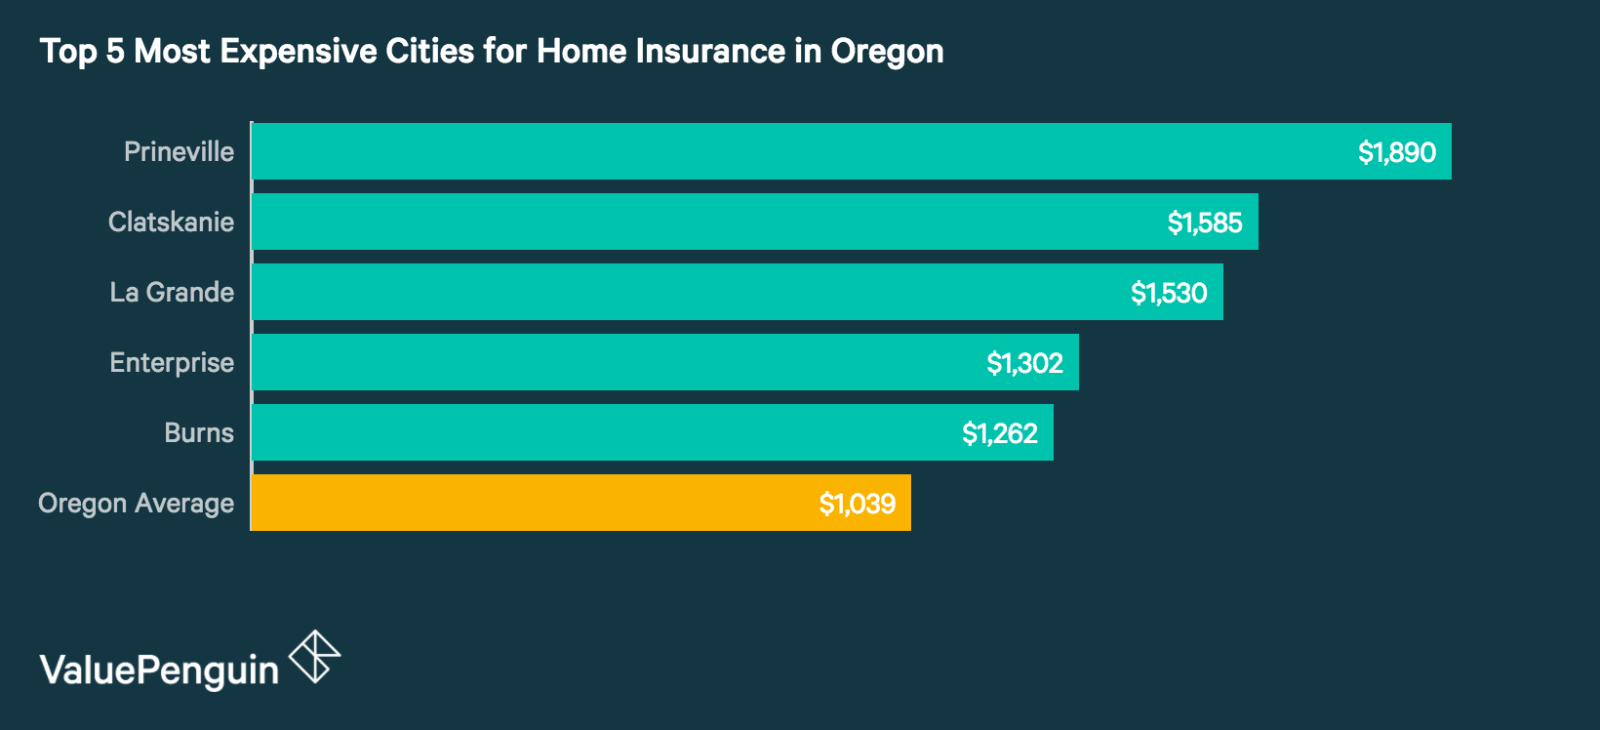 Top 5 Most Expensive Cities in Oregon for Homeowners Insurance